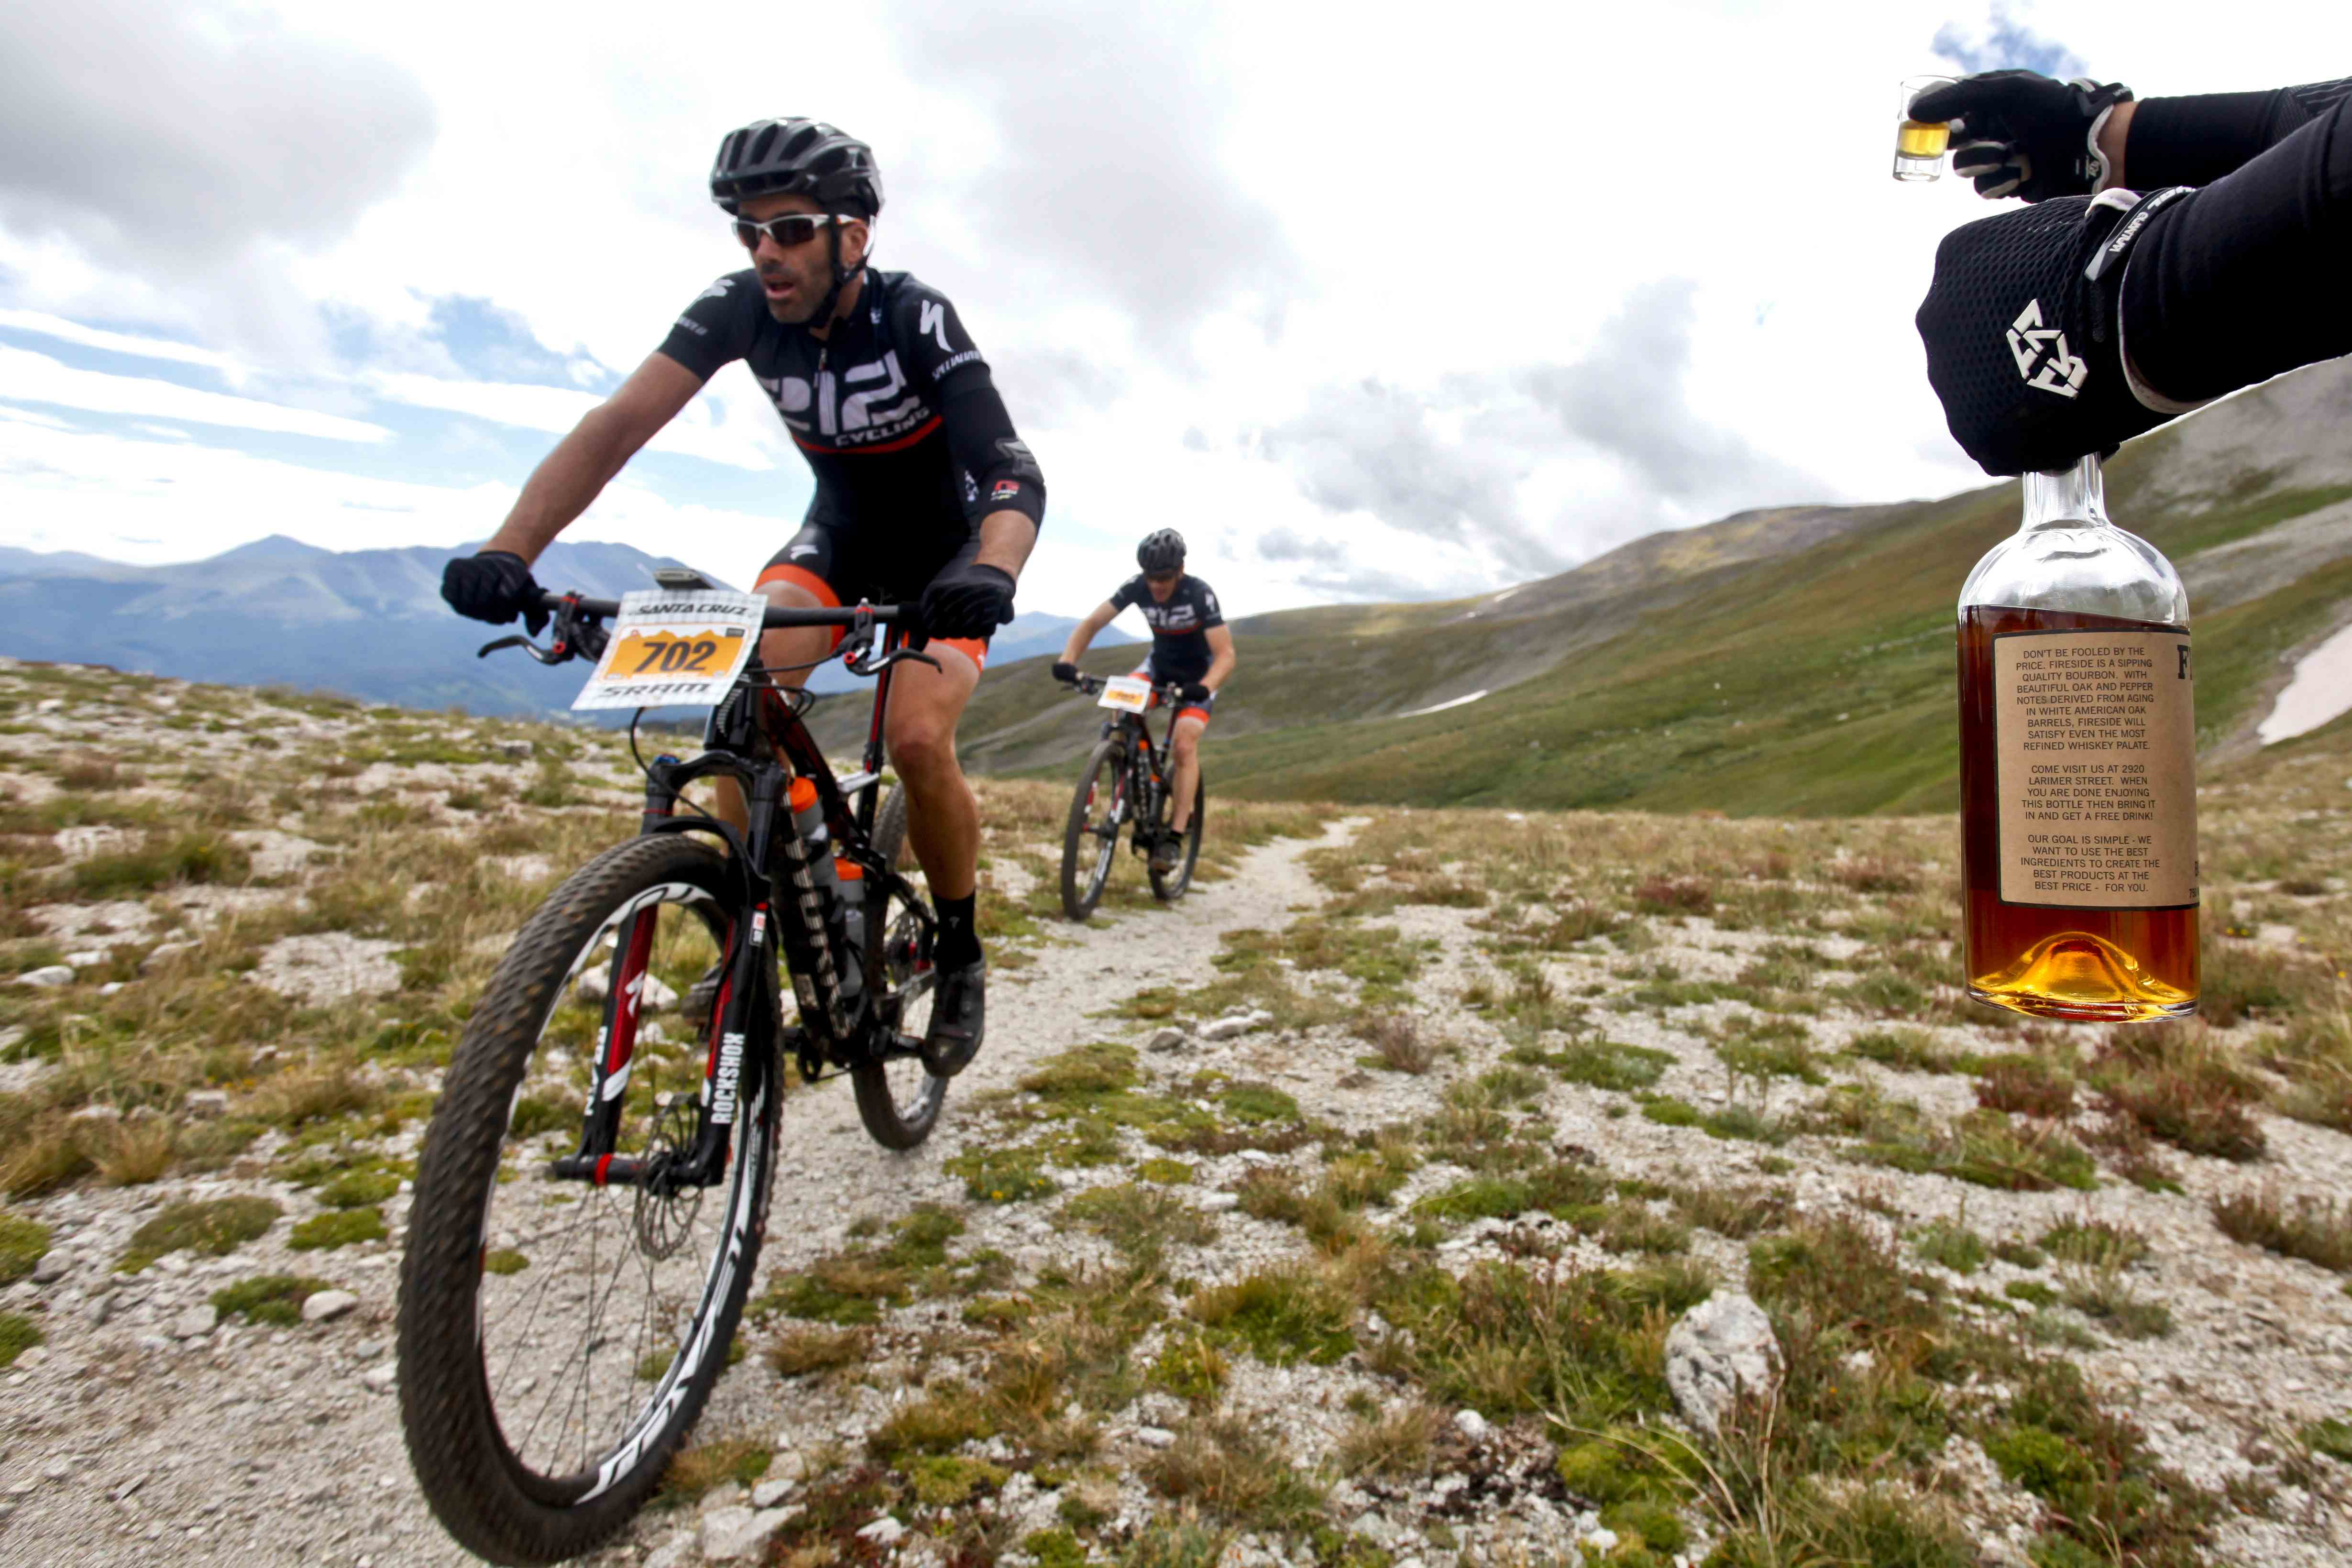 The Breck Epic Is a Lifestyle Race